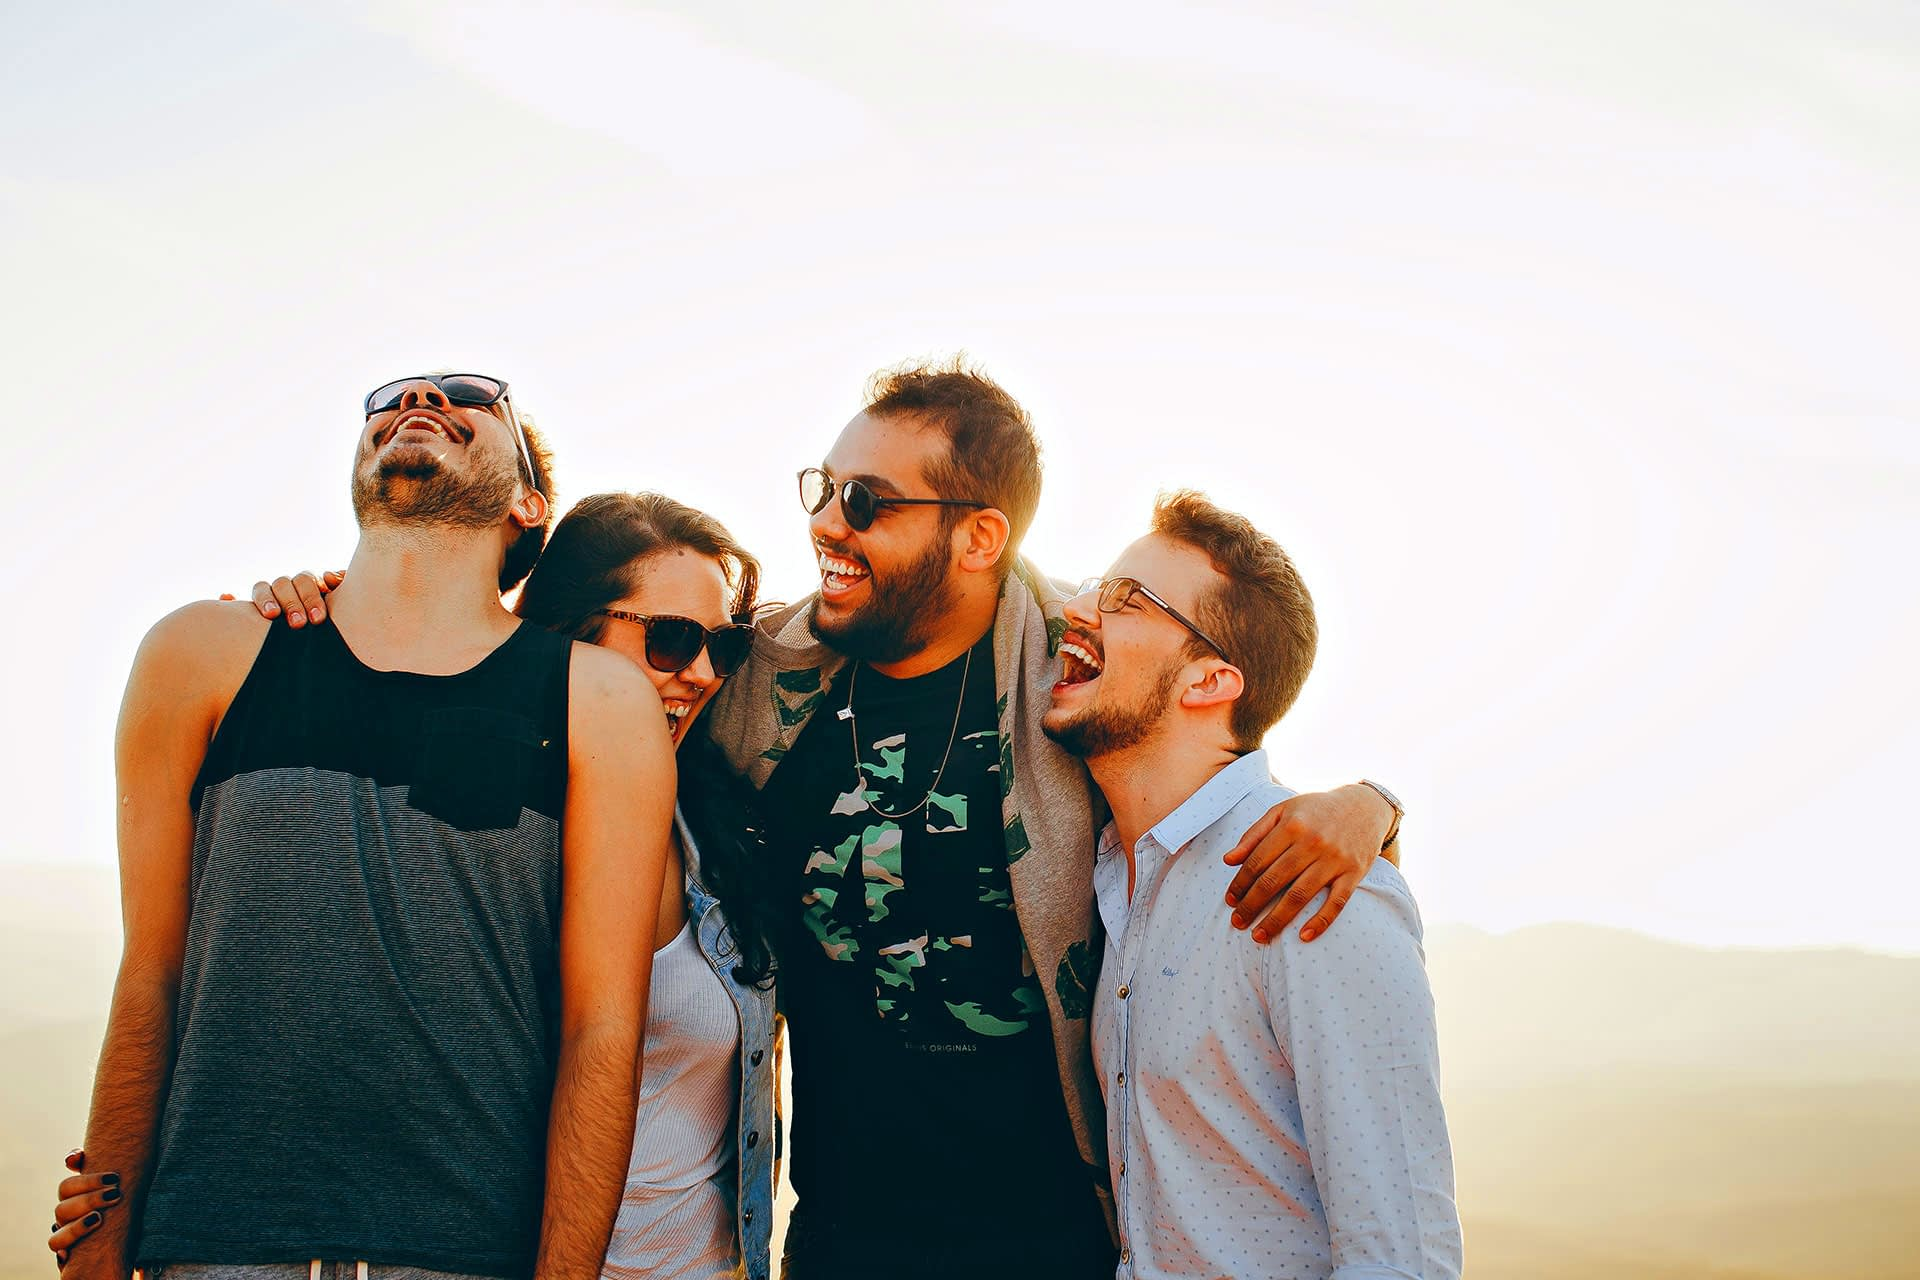 A group of young people are laughing outdoor.